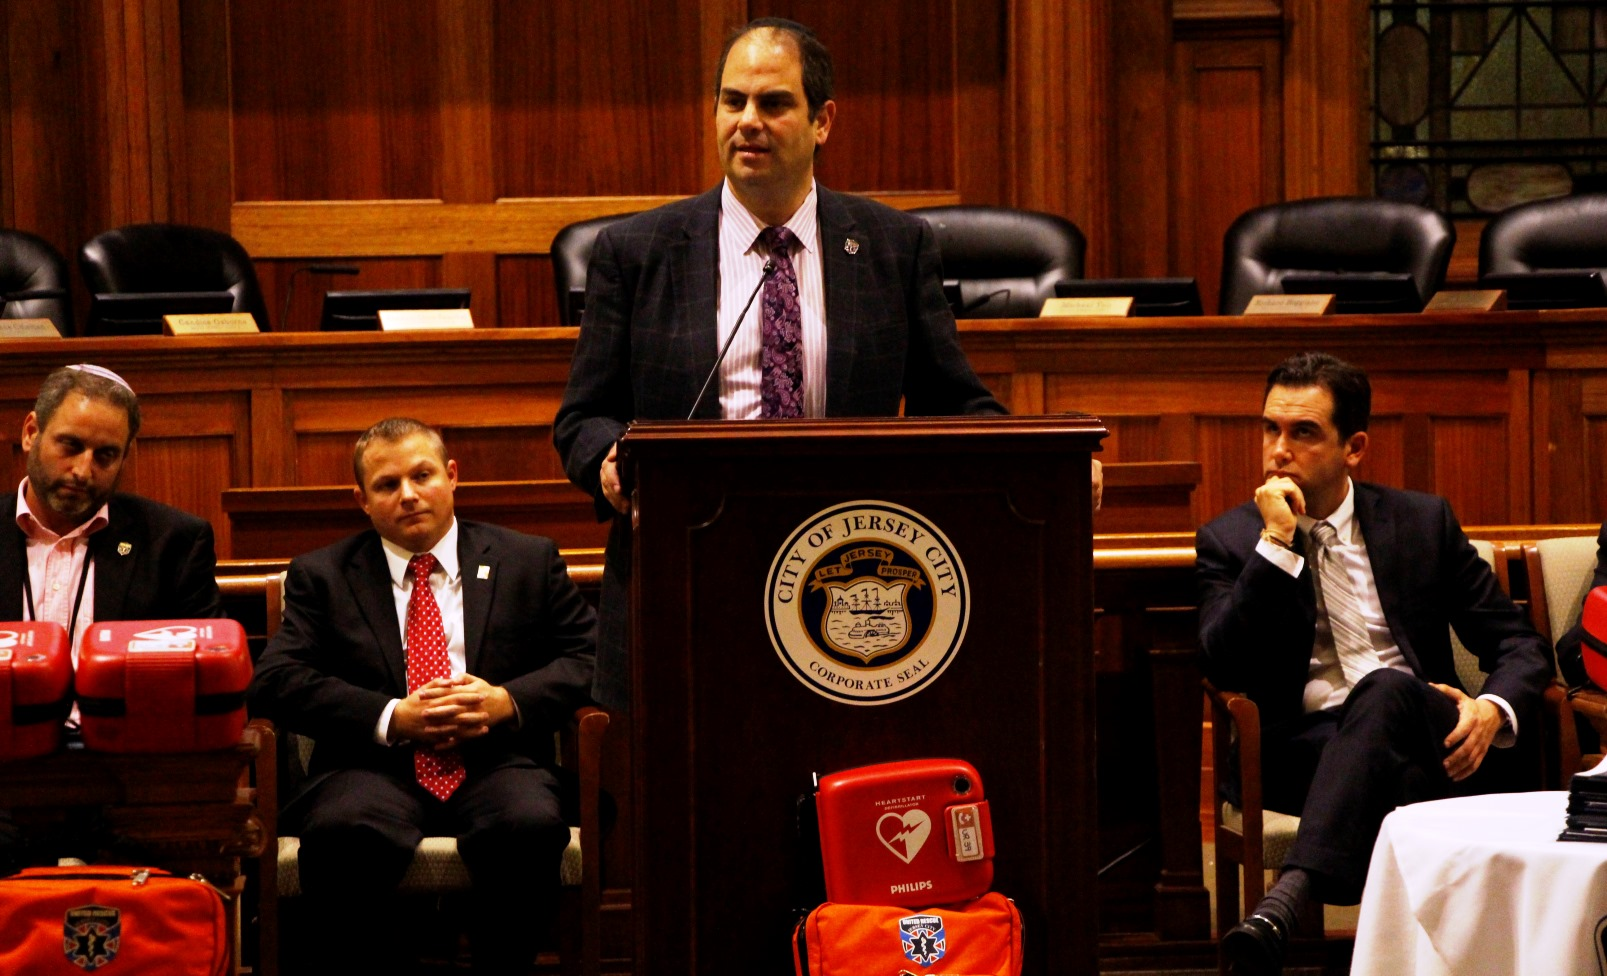 Eli Beer speaking at the first EMT graduation ceremony for United Rescue in Jersey City. Photo by Yadin Goldman